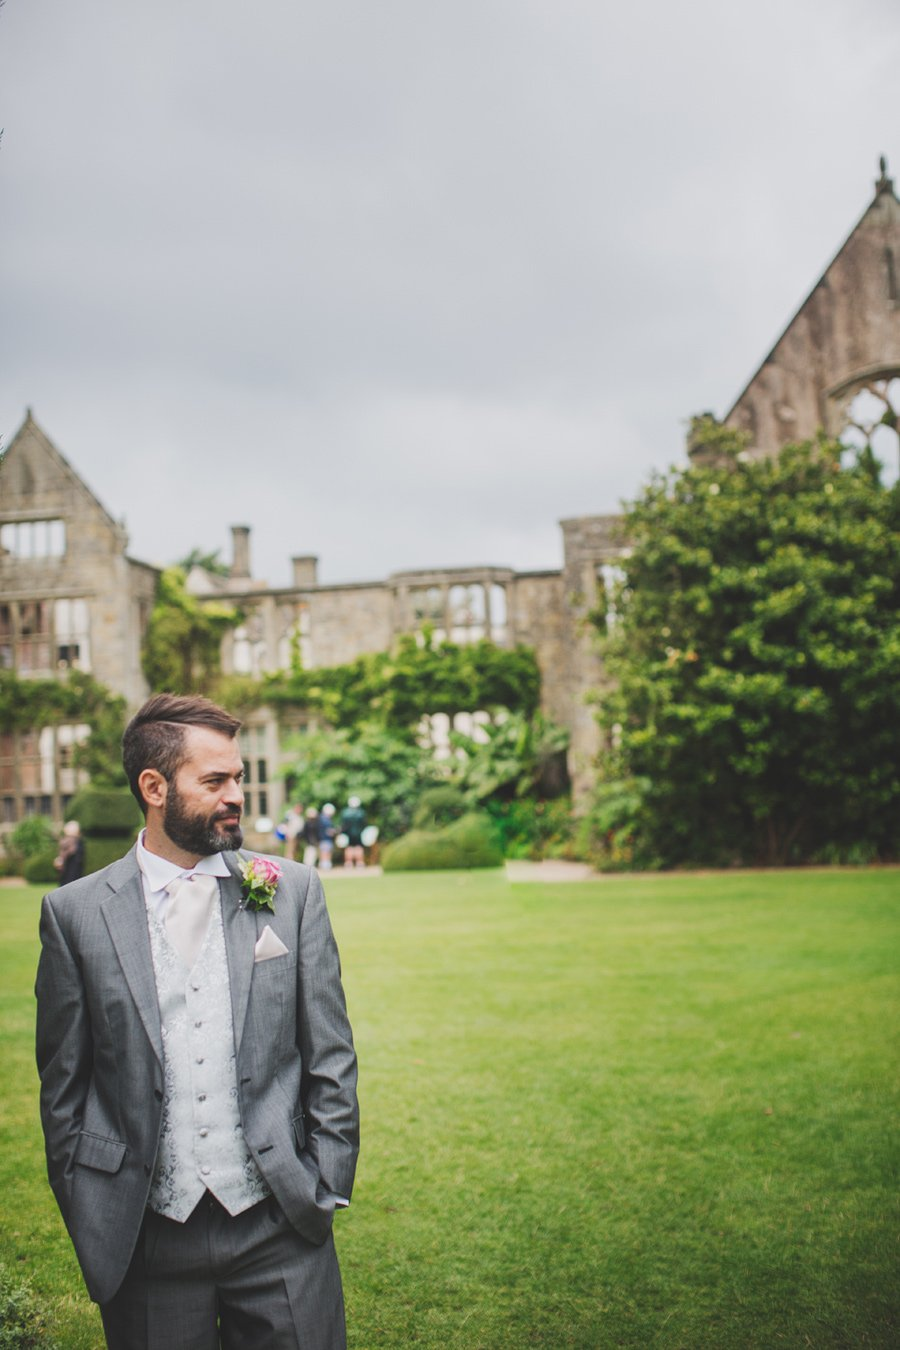 Nymans-Garden-Wedding-Kim-and-Lee-23